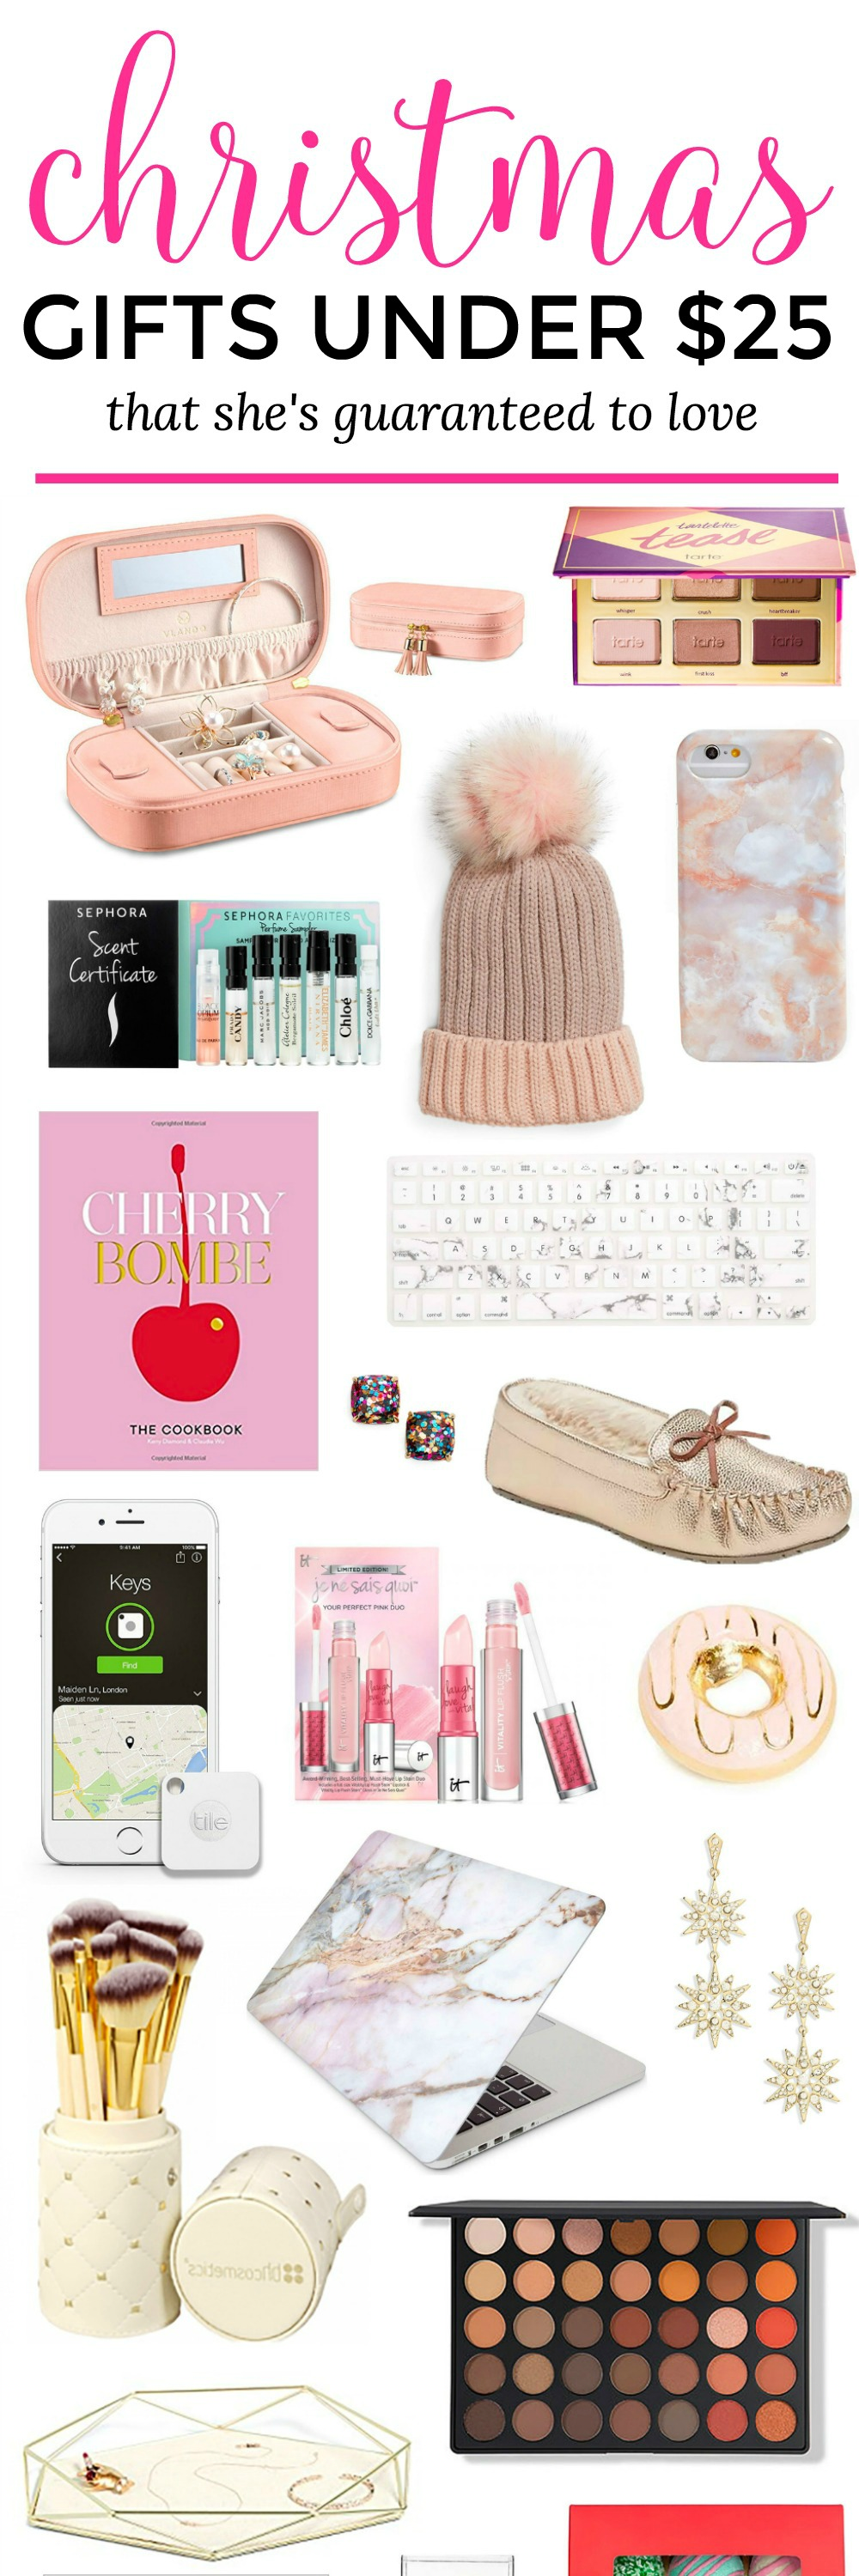 Womens christmas gift ideas under $25